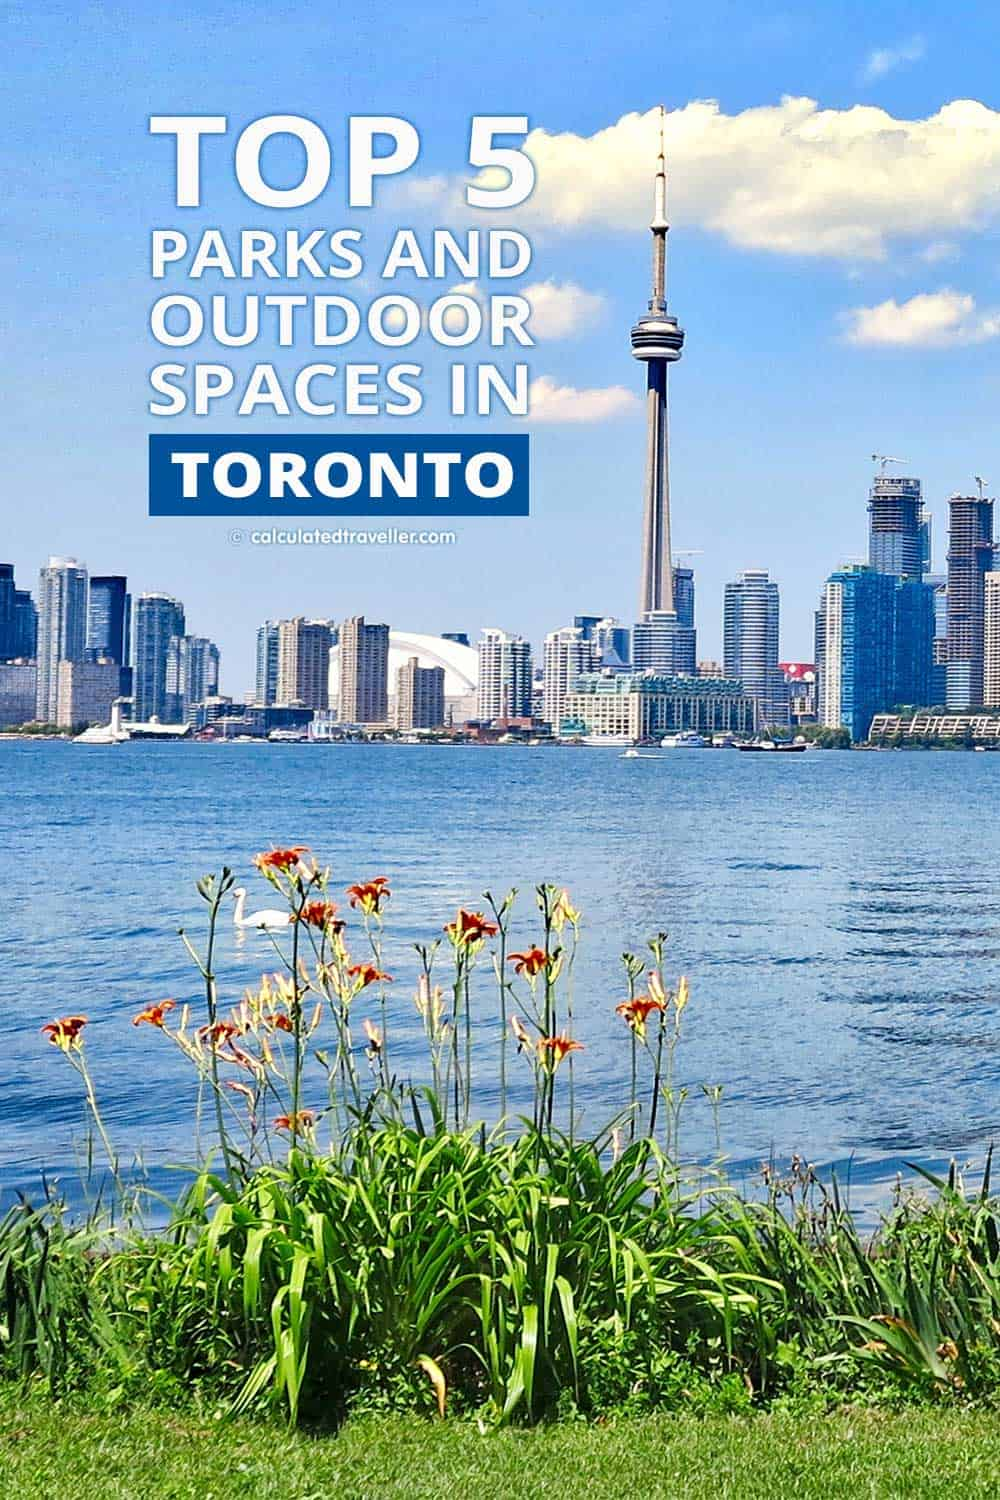 Top 5 Parks and Outdoor Spaces in Toronto | #Toronto #Ontario #travel #nature #outdoor #park #Canada